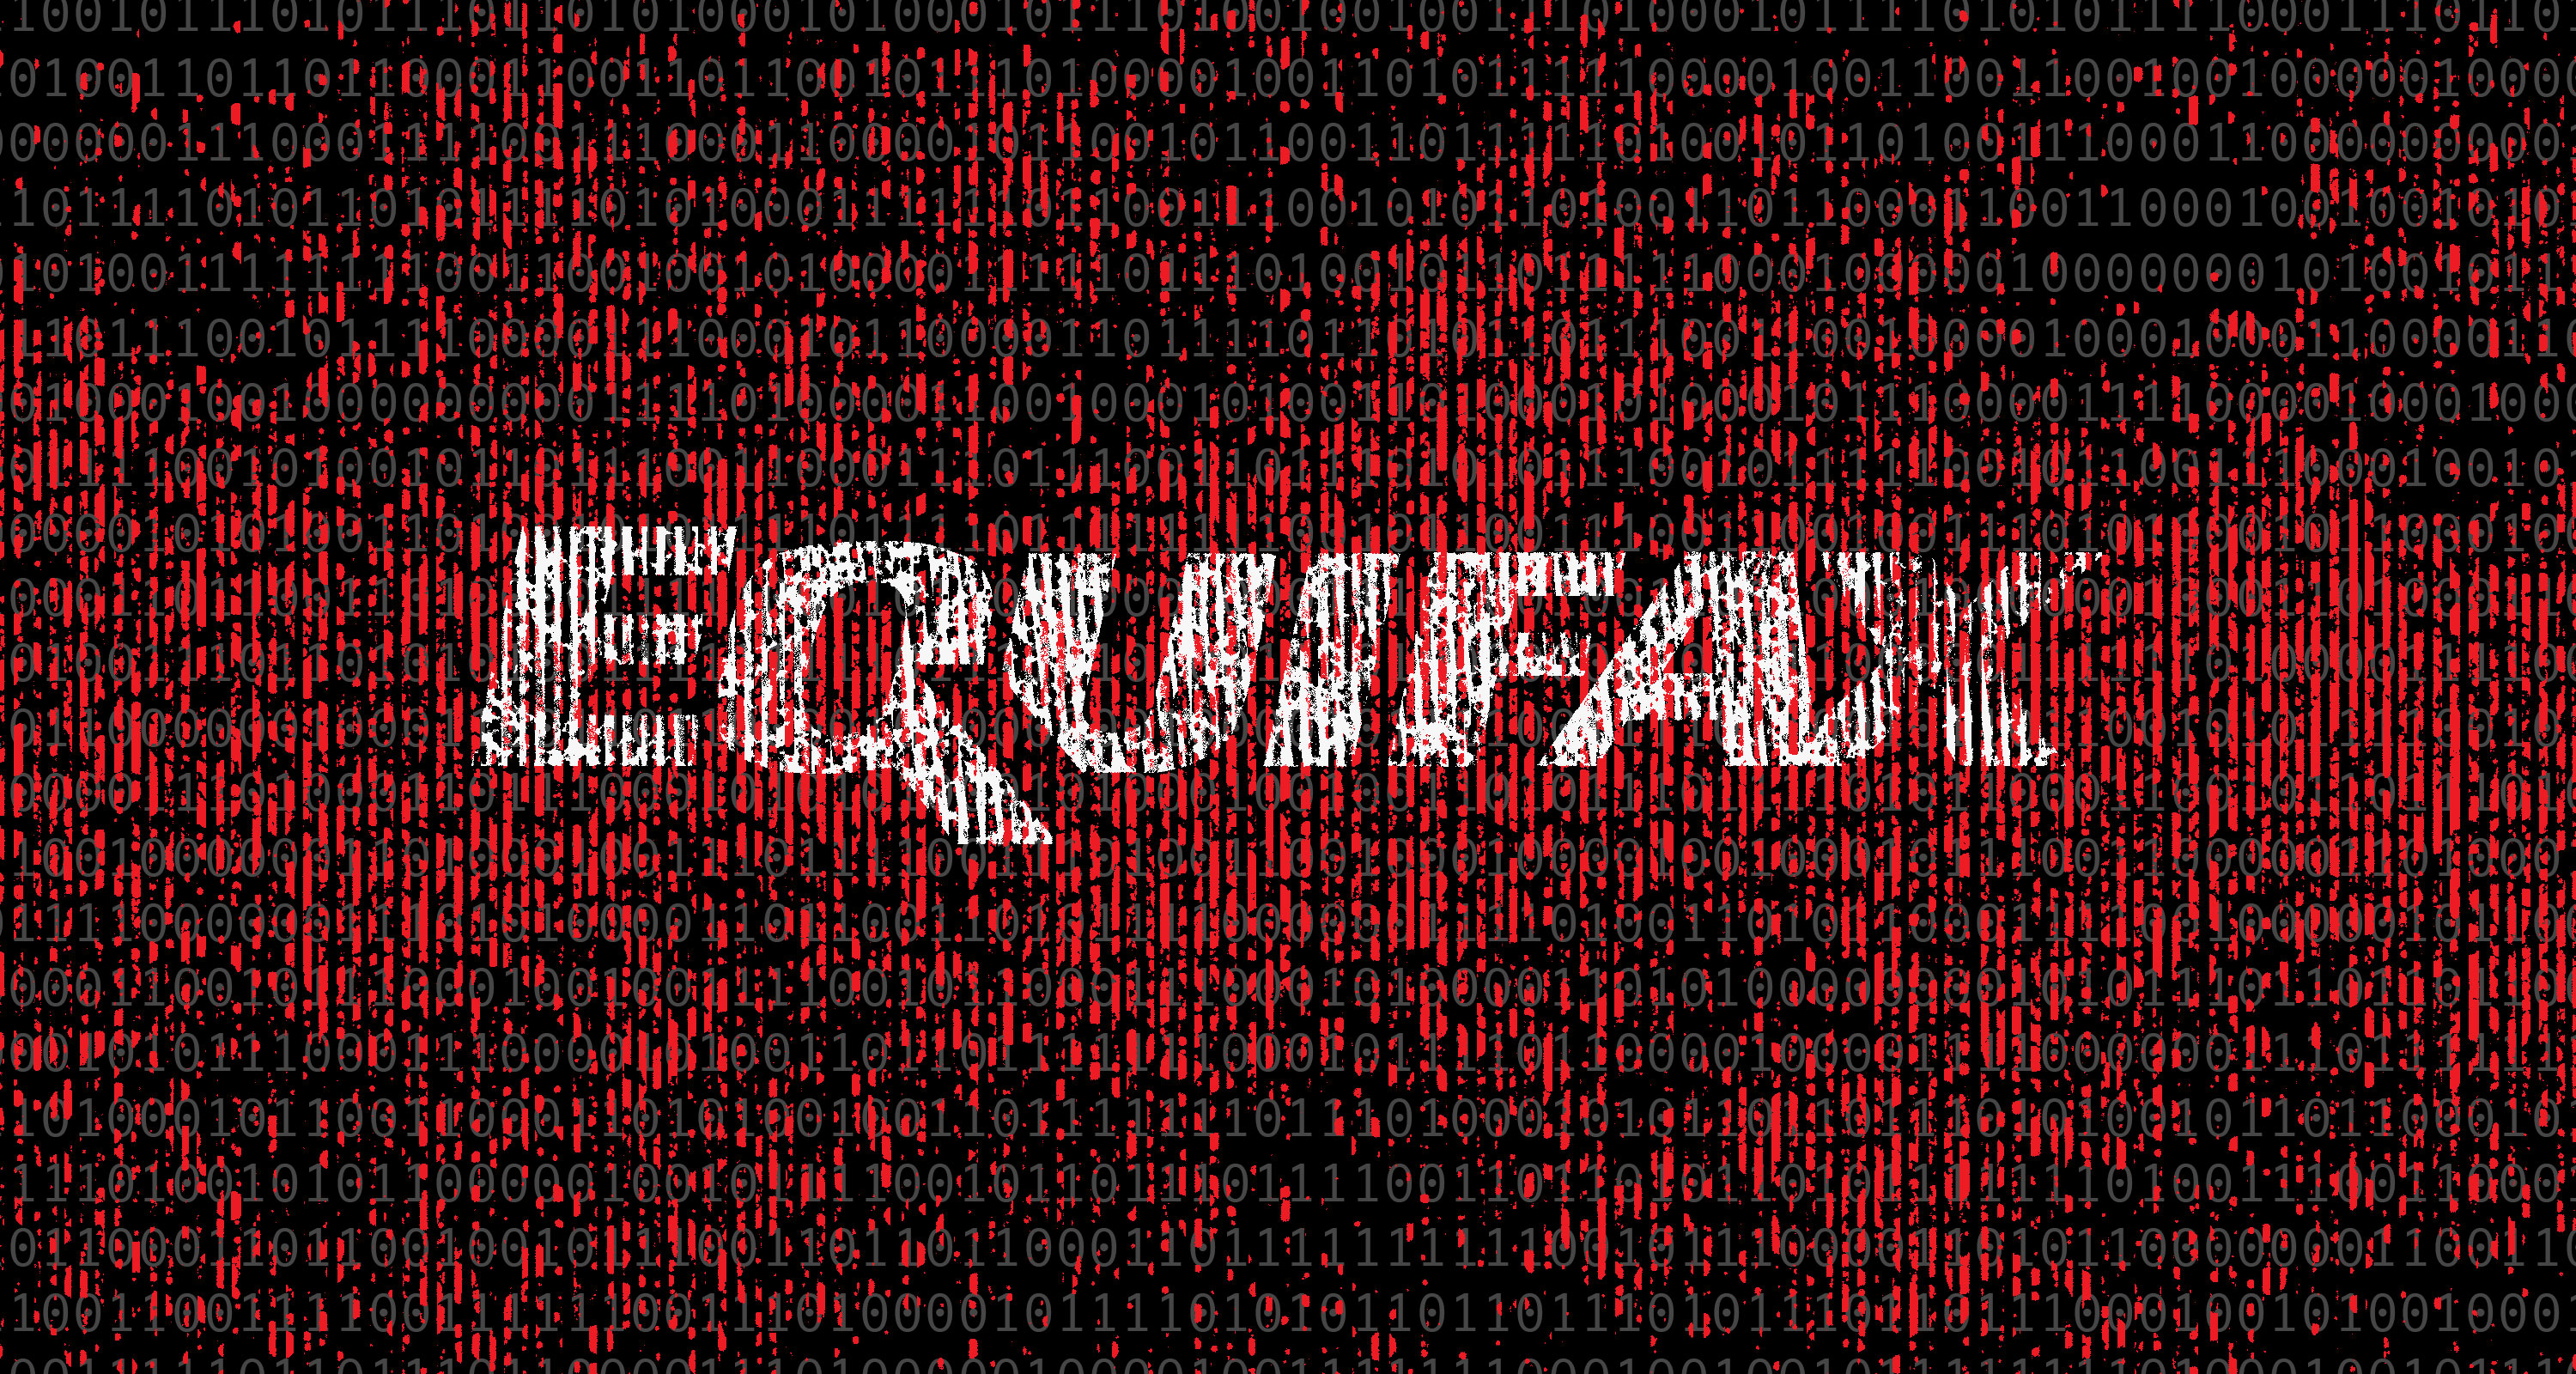 Equifax Update Clarifies Breach Details to SEC